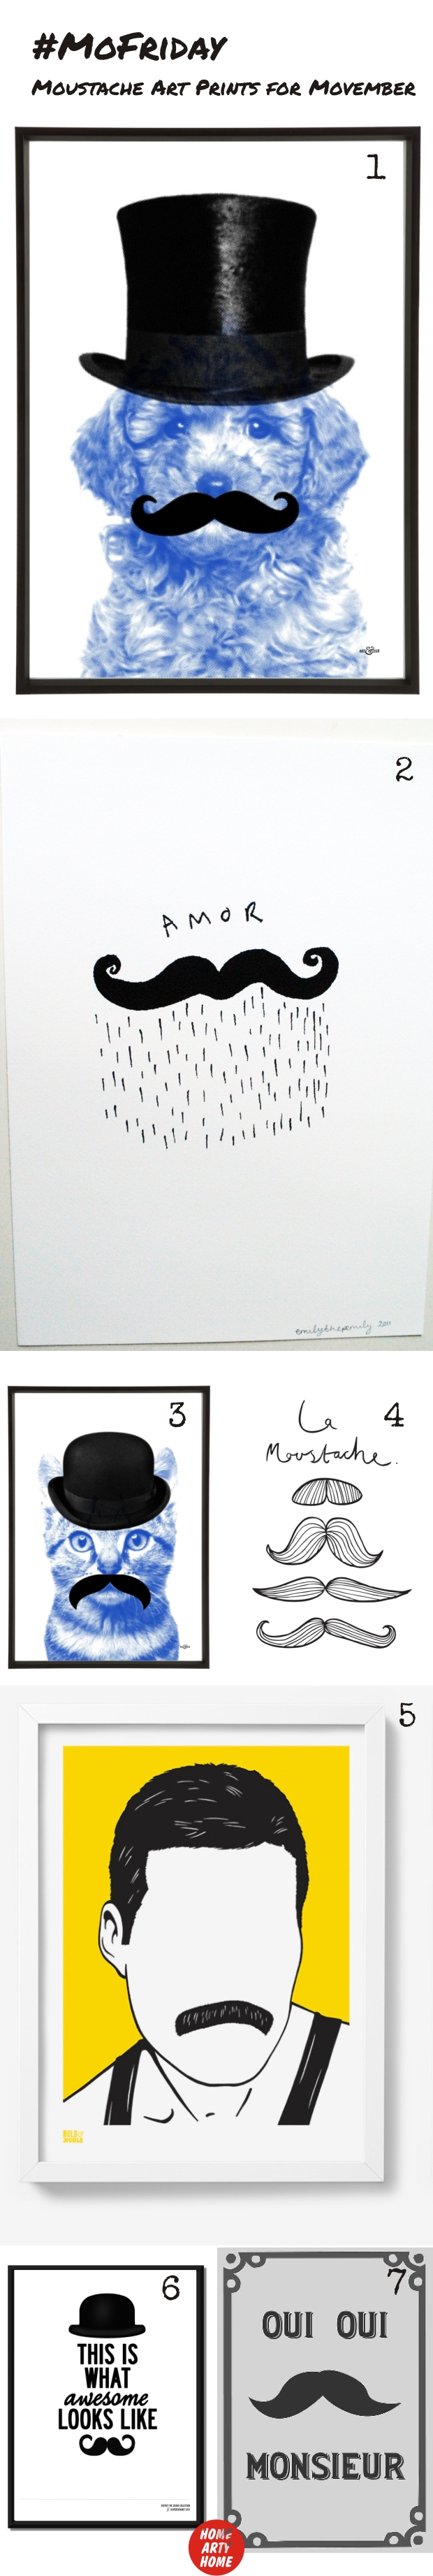 MoFriday Movember Moustache Art Prints homeartyhome